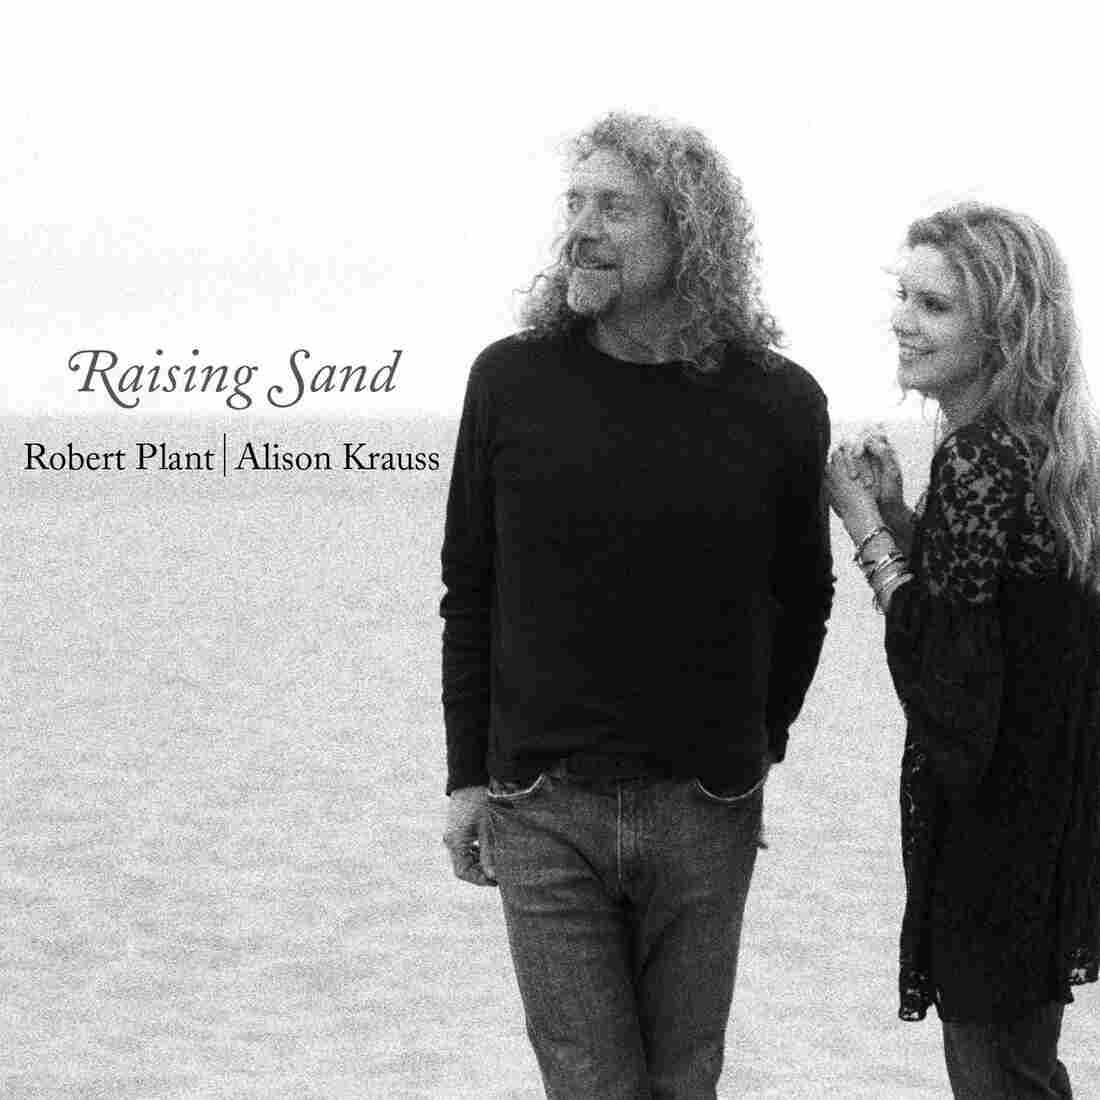 Robert Plant and Alison Krauss, Raising Sand